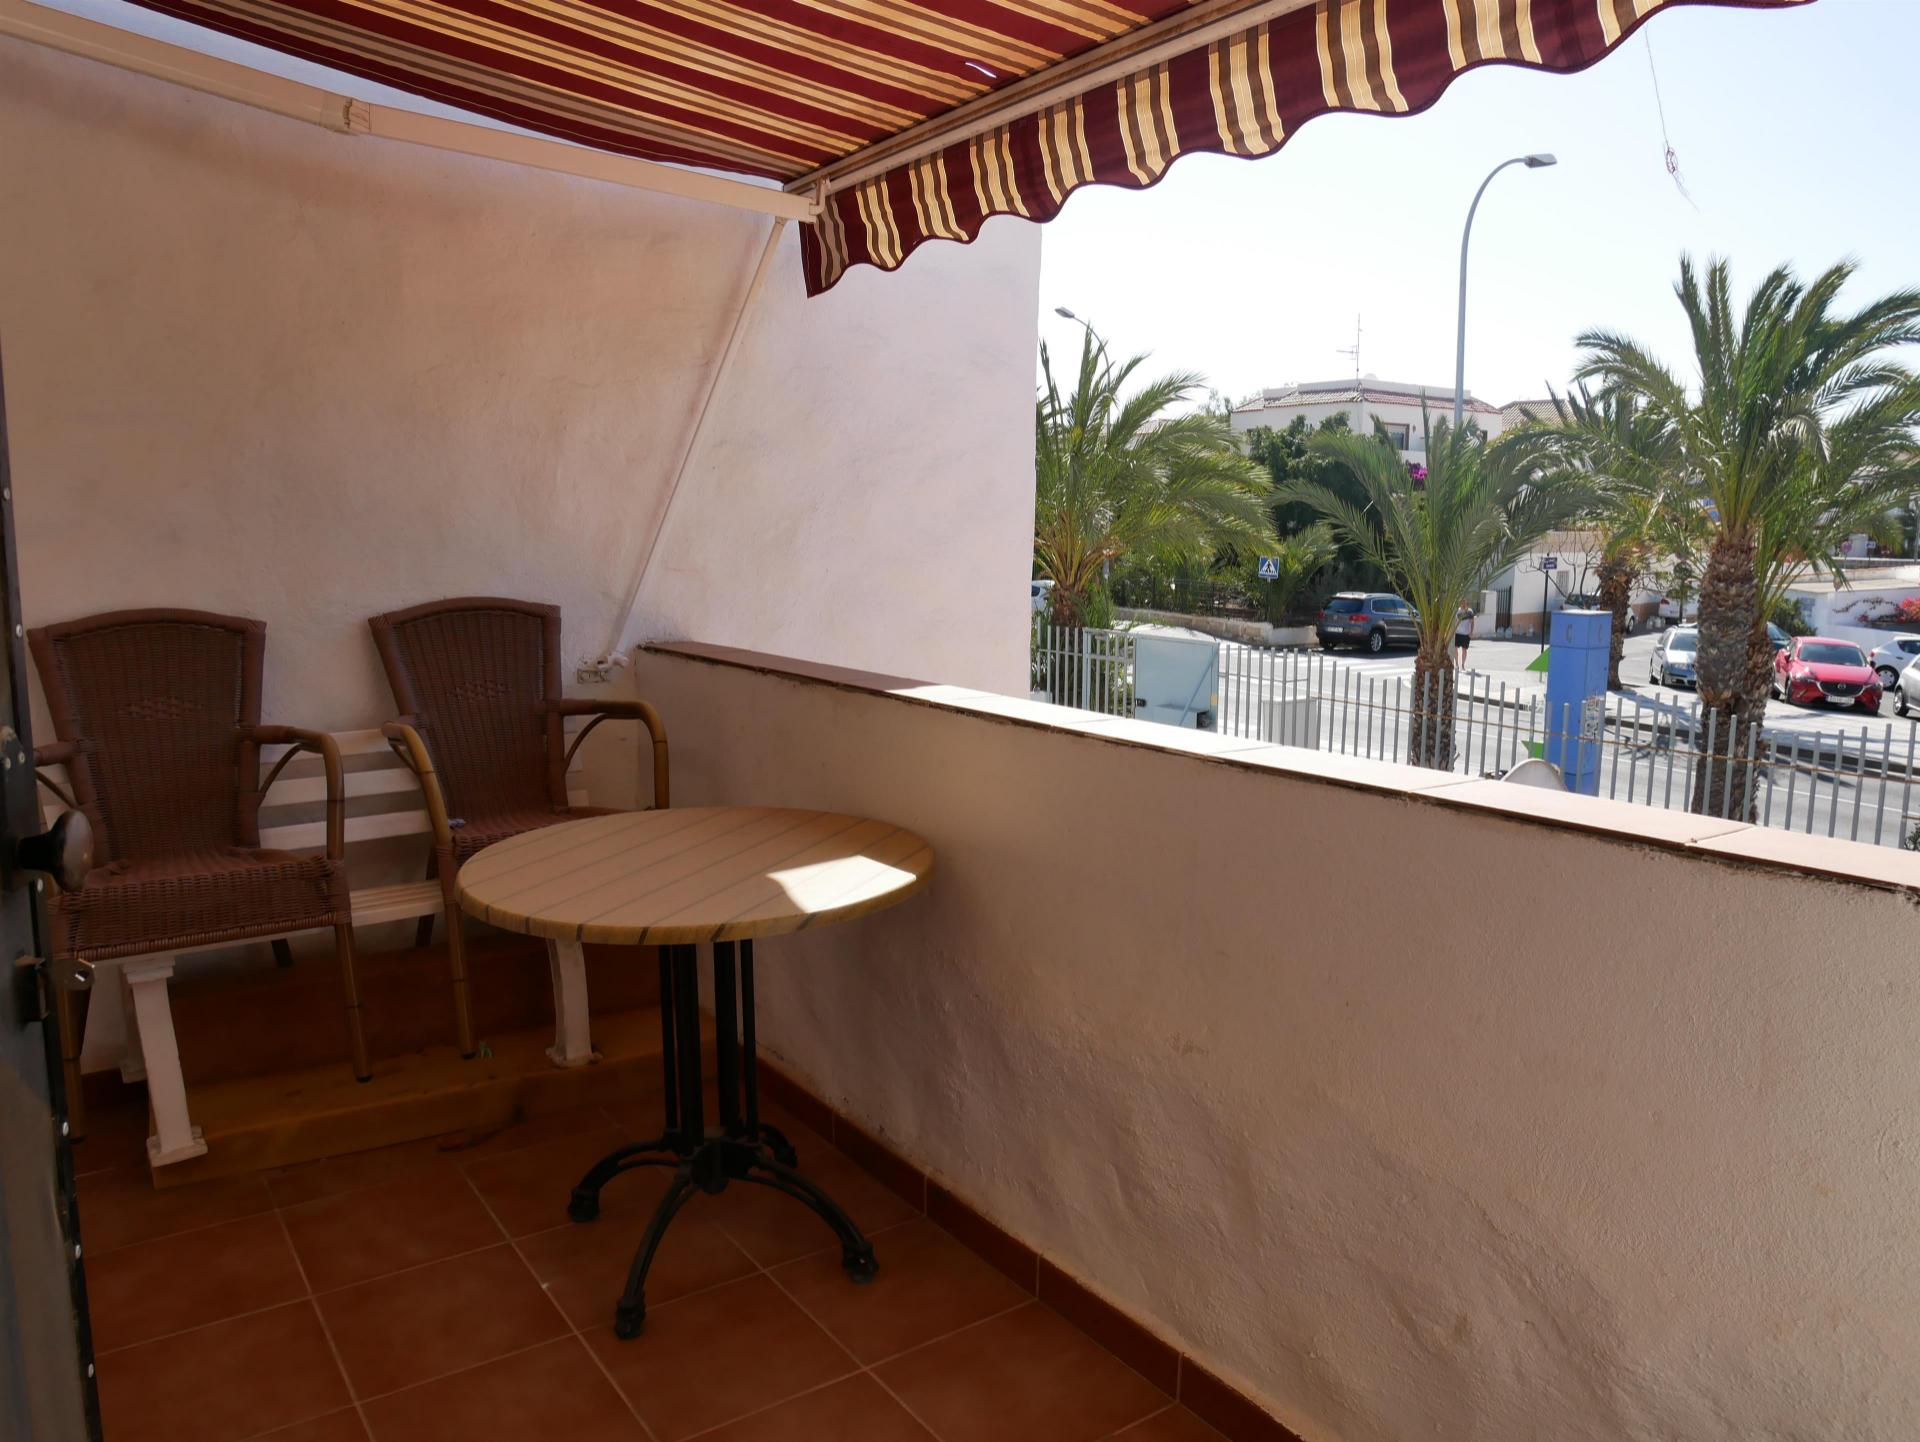 1 bedroom apartment with a built surface of 58m² and a terrace of 12m². Located on the .... more info